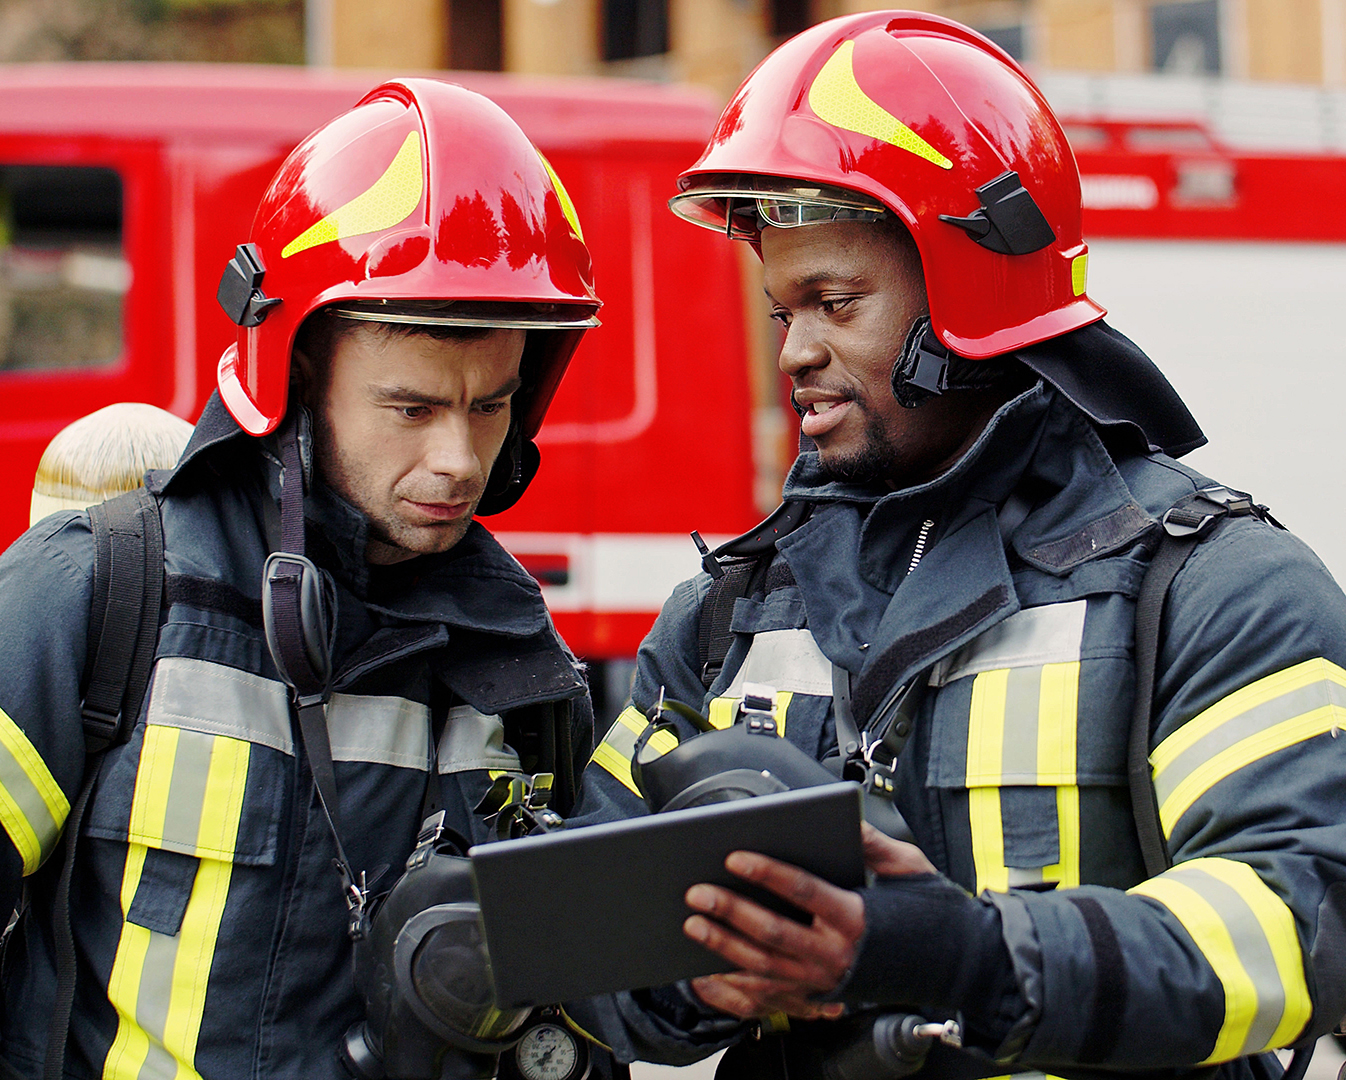 firefighters looking at tablet in uniform at scene of incident